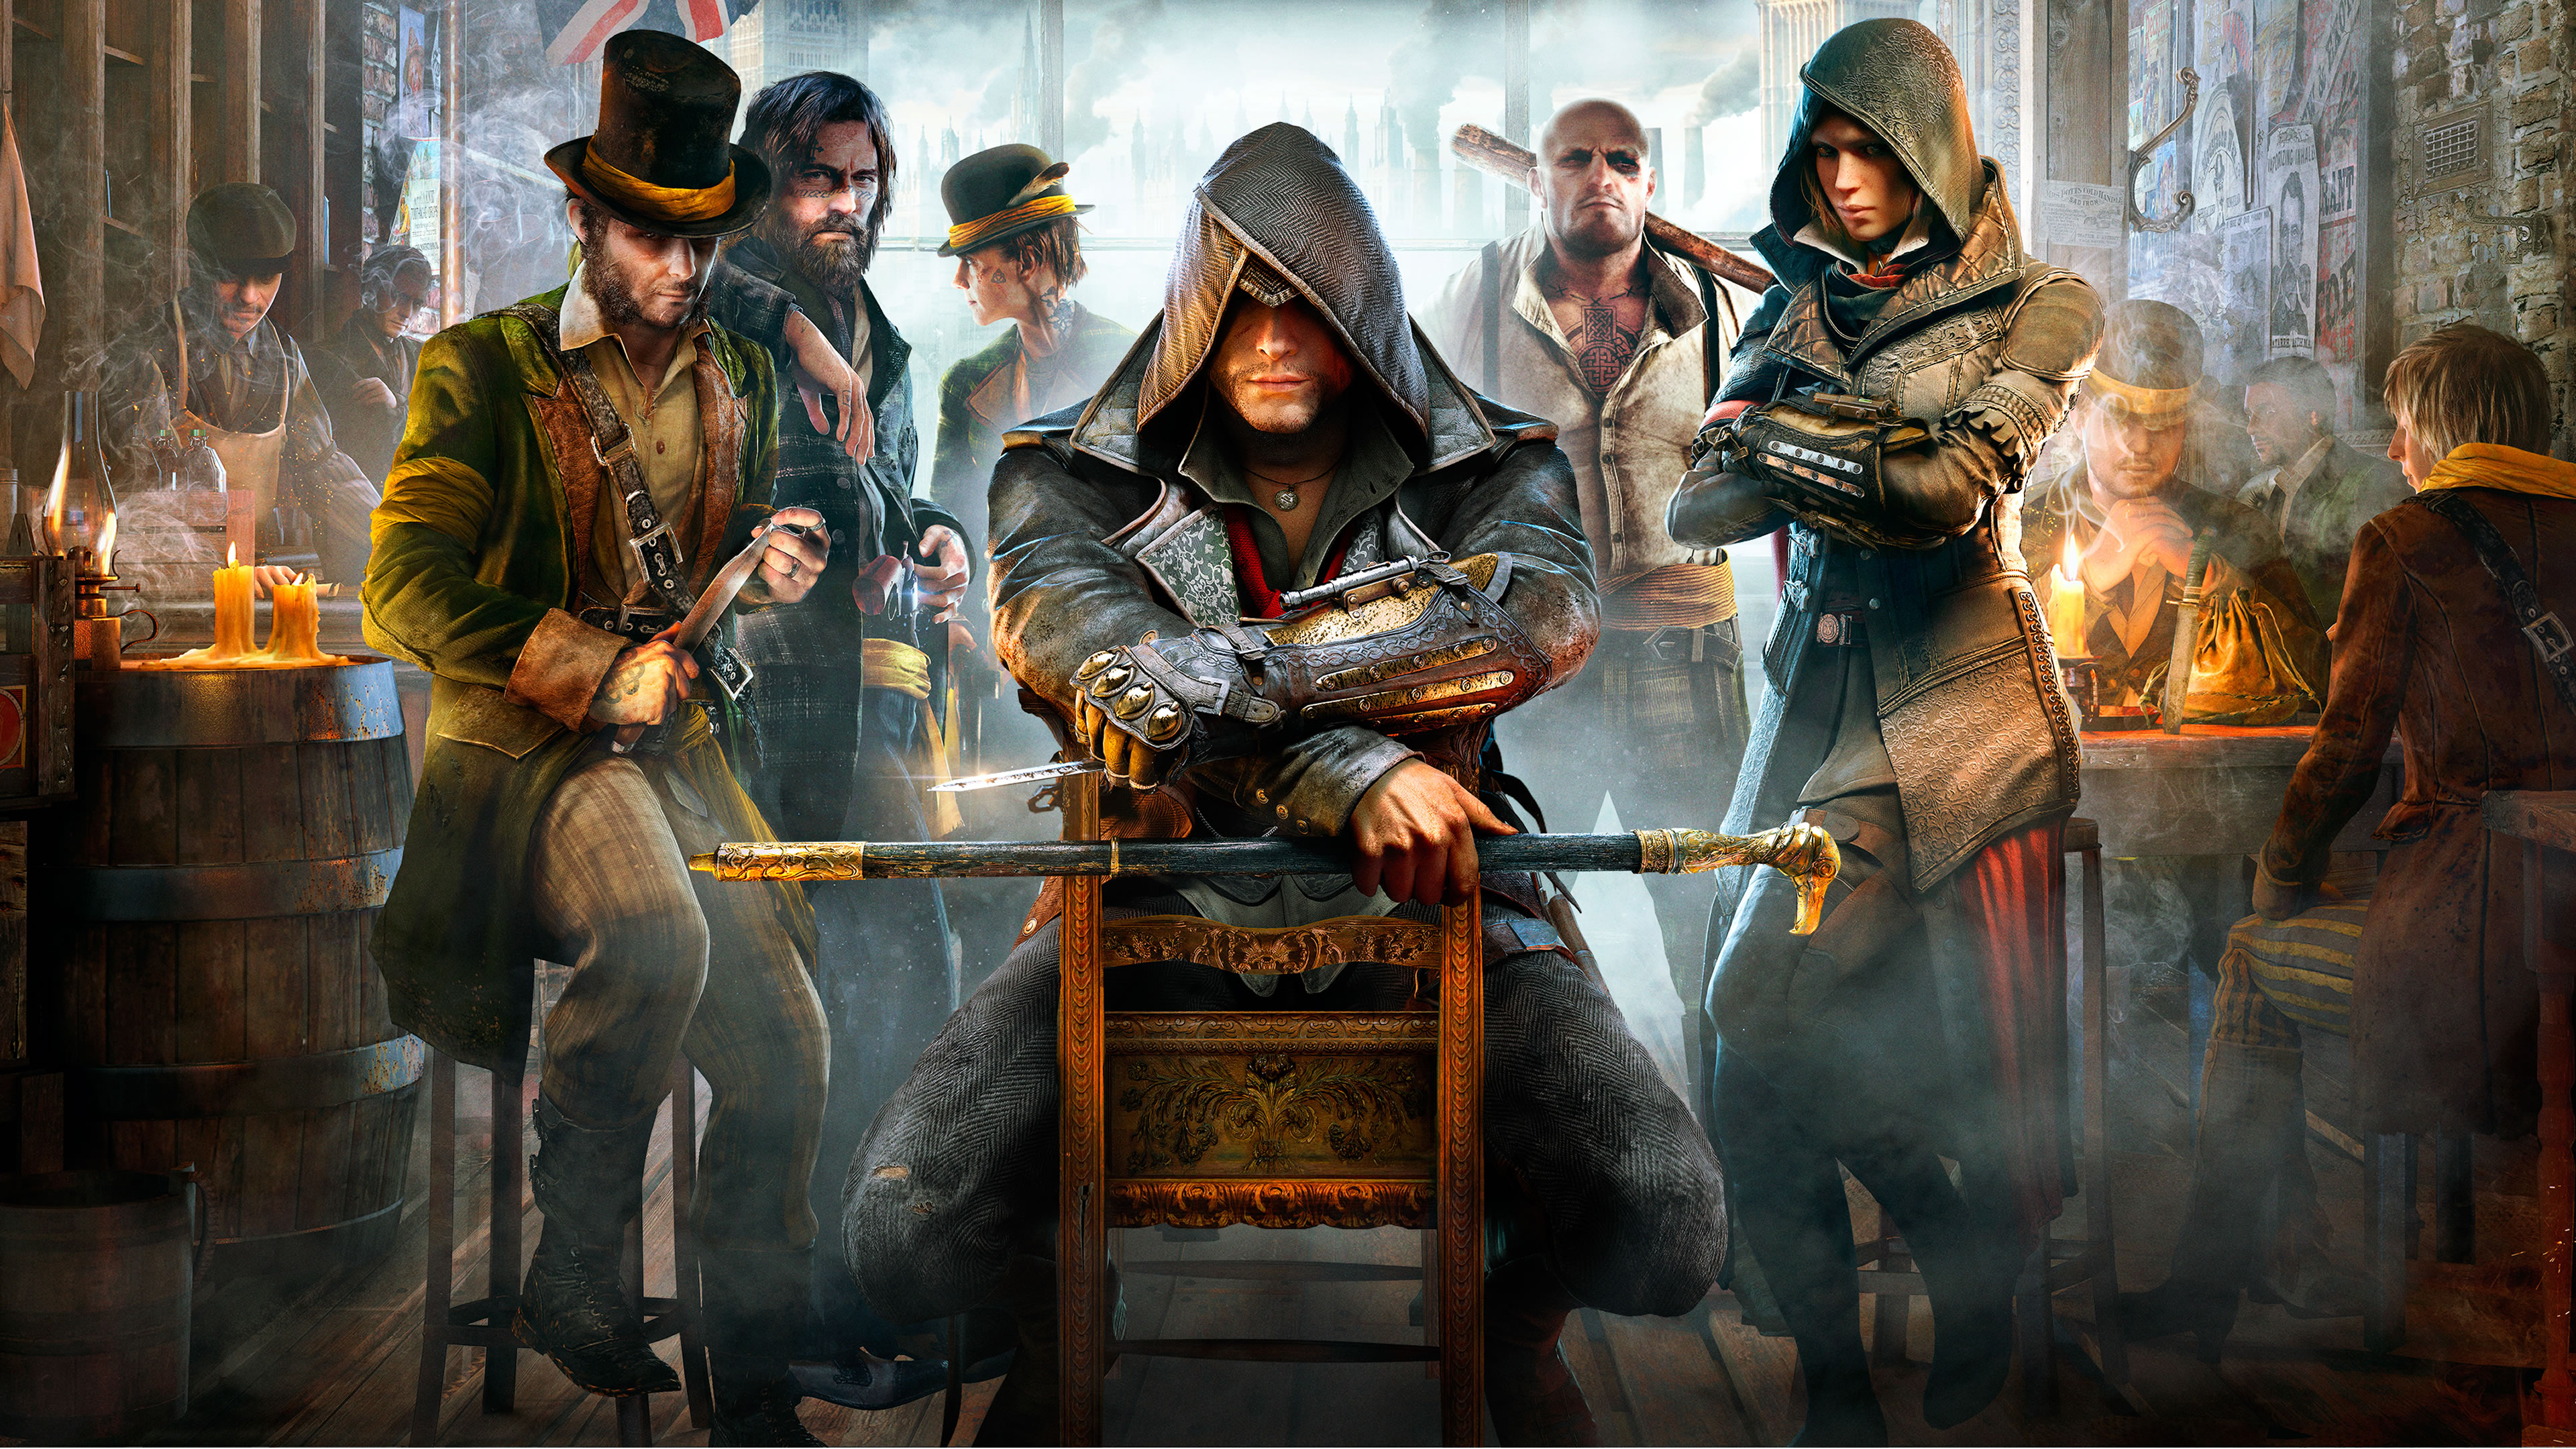 10. Assassin's Creed Syndicate